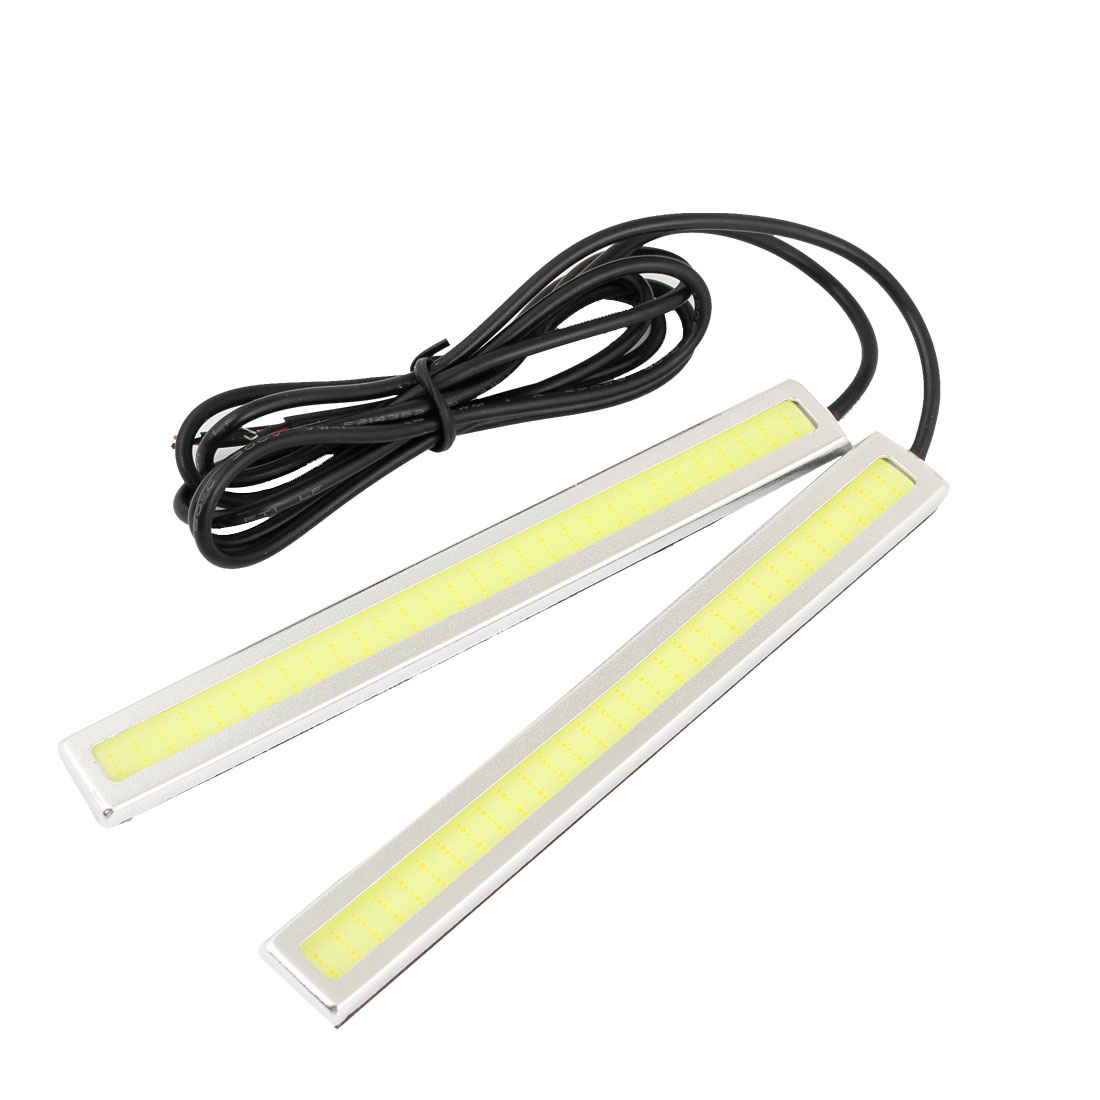 Unique Bargains 2 Pcs White 60- COB Auto Car DRL Daytime Running Light Strip Head Lamp 14cm